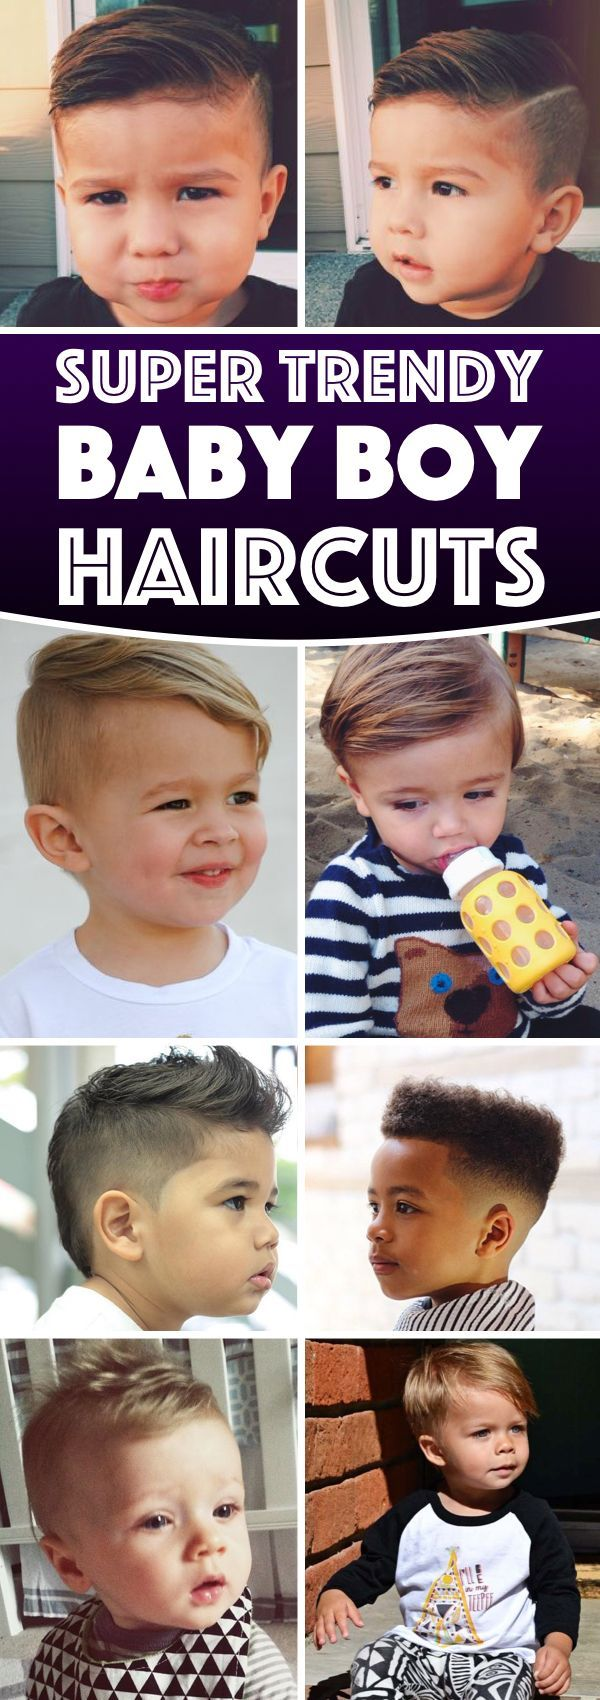 Boy hairstyle haircuts  super trendy baby boy haircuts charming your little oneus